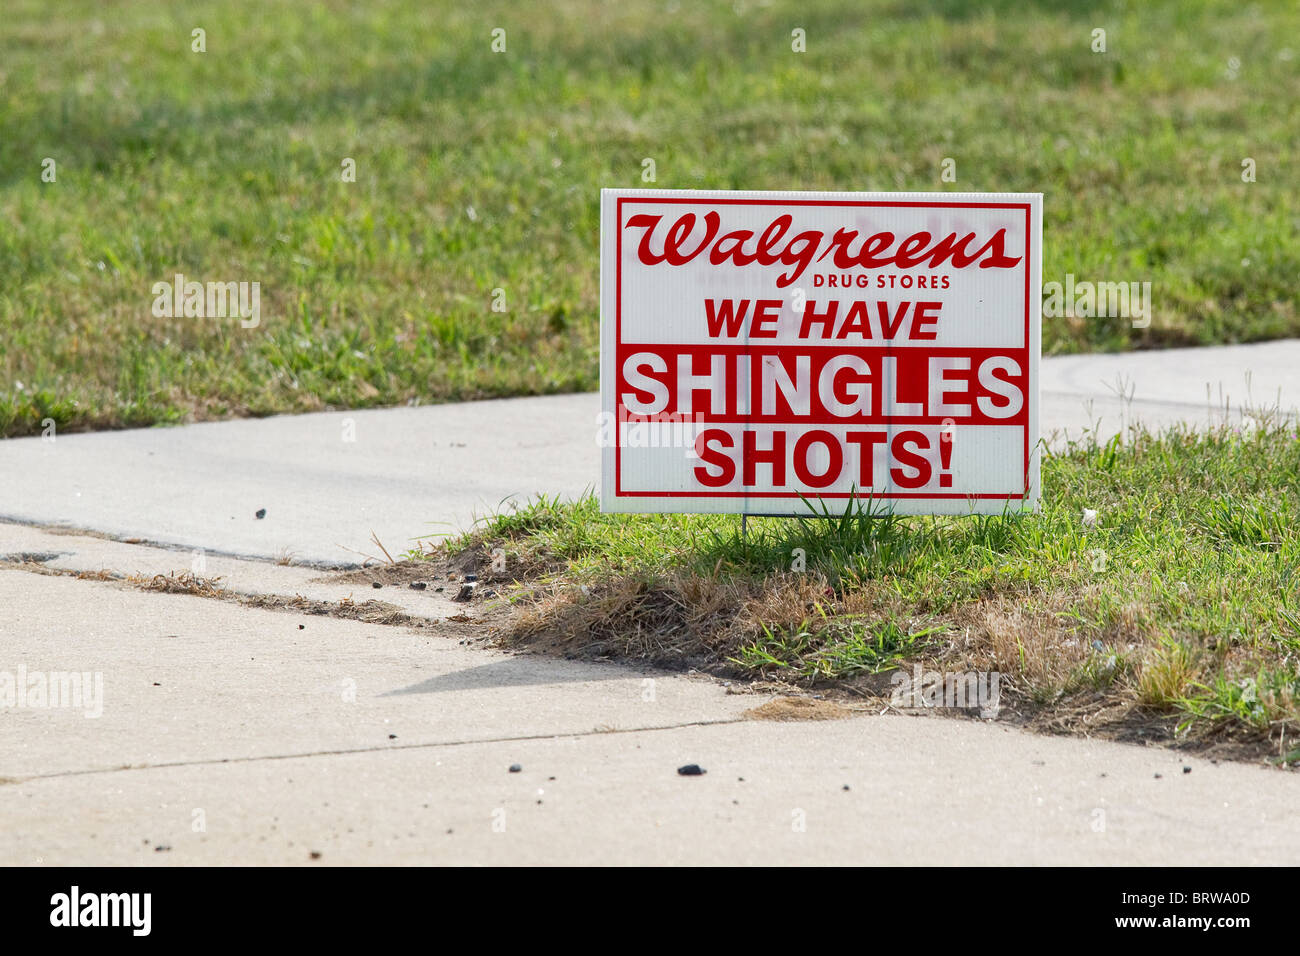 Small Walgreens sign advertising vaccines, shots for shingles, on grass next to sidewalk - Stock Image